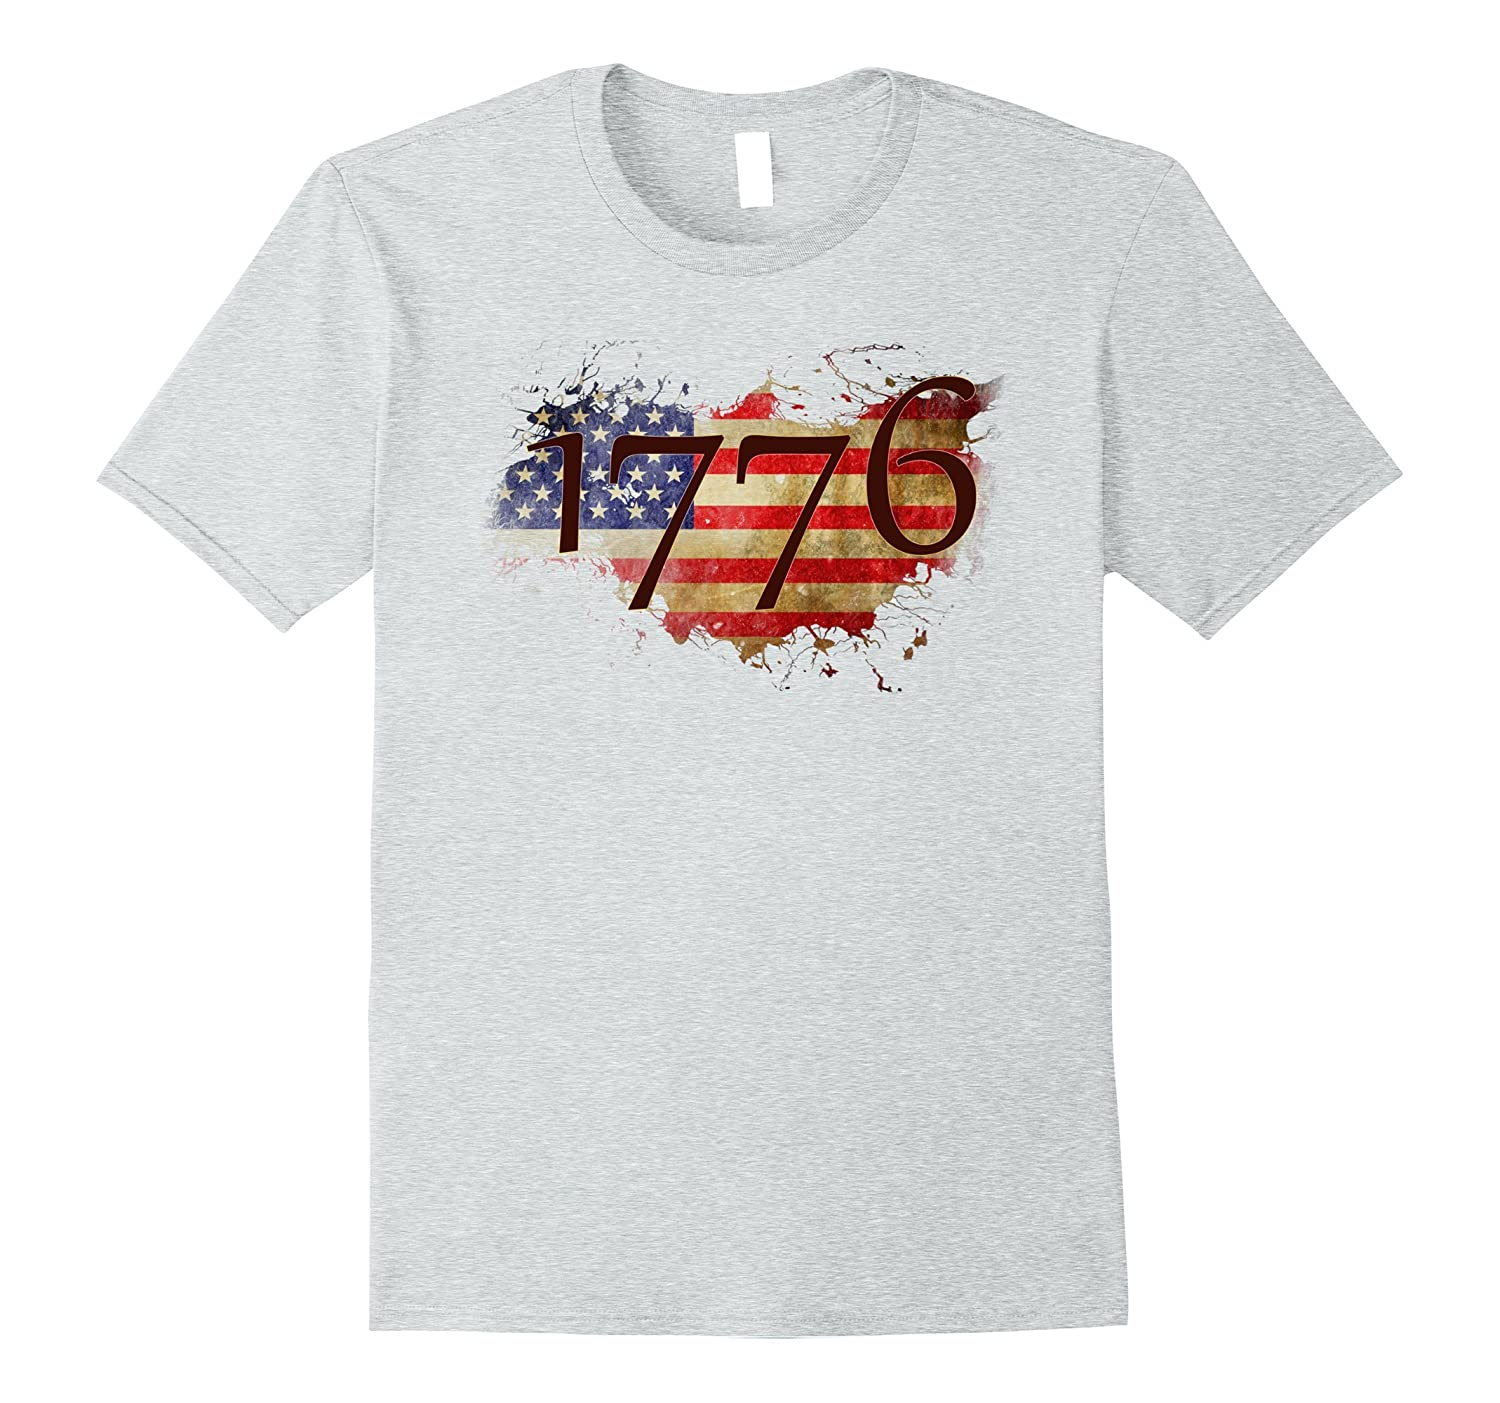 America Since 1776 with Flag retro T-shirt July 4th-PL